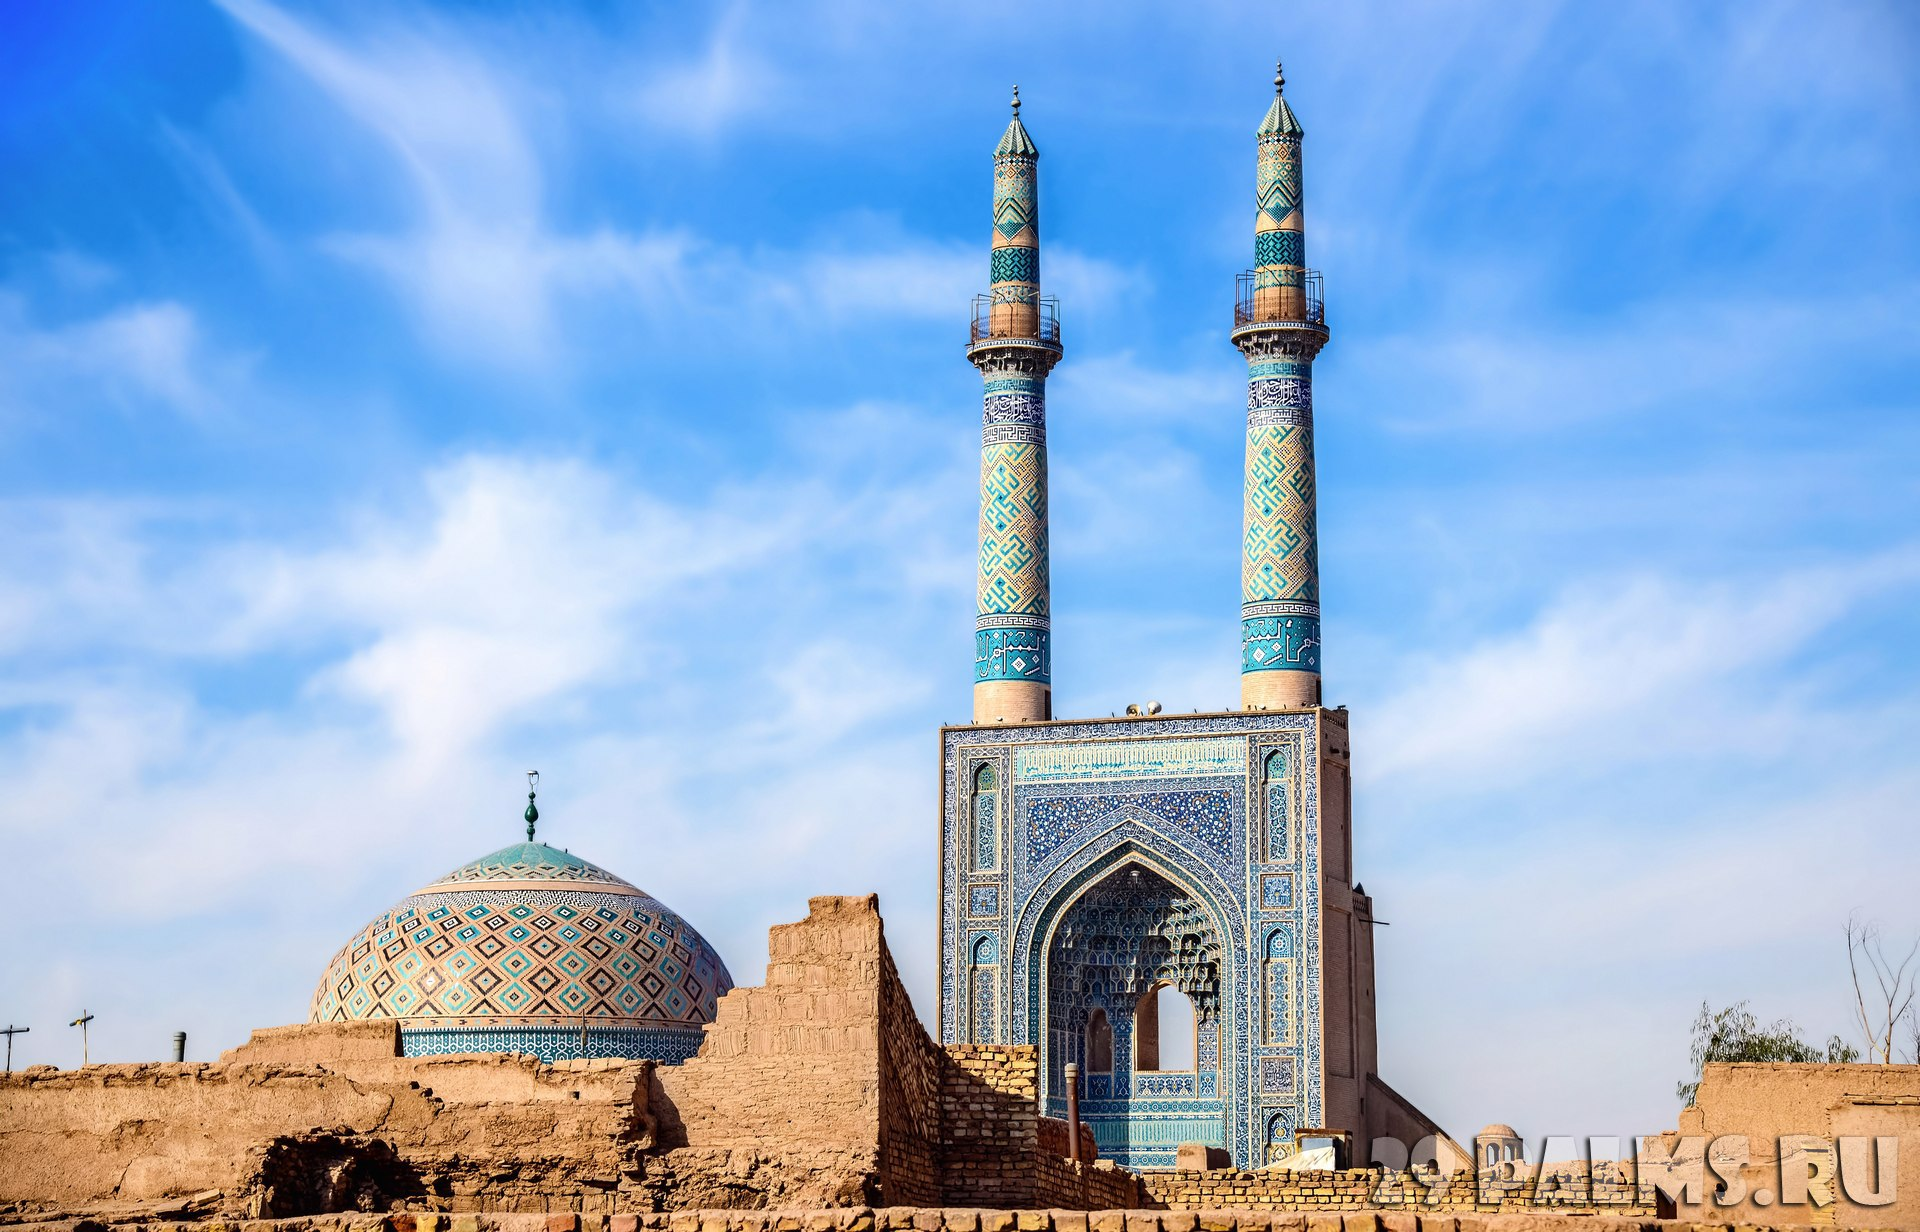 Иран. Йезд. Мечеть Джаме. Jame Mosque of Yazd in Iran. The mosque is crowned by a pair of minarets, the highest in Iran. Фото Leonid_Andronov - Depositphotos